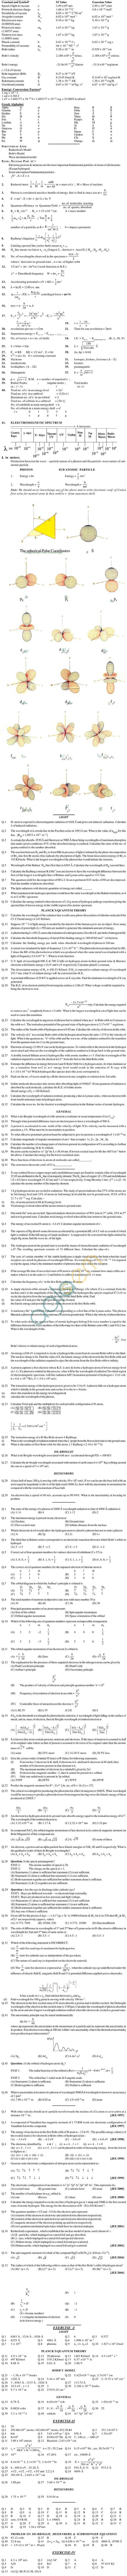 Chemistry Study Material - Chapter 3